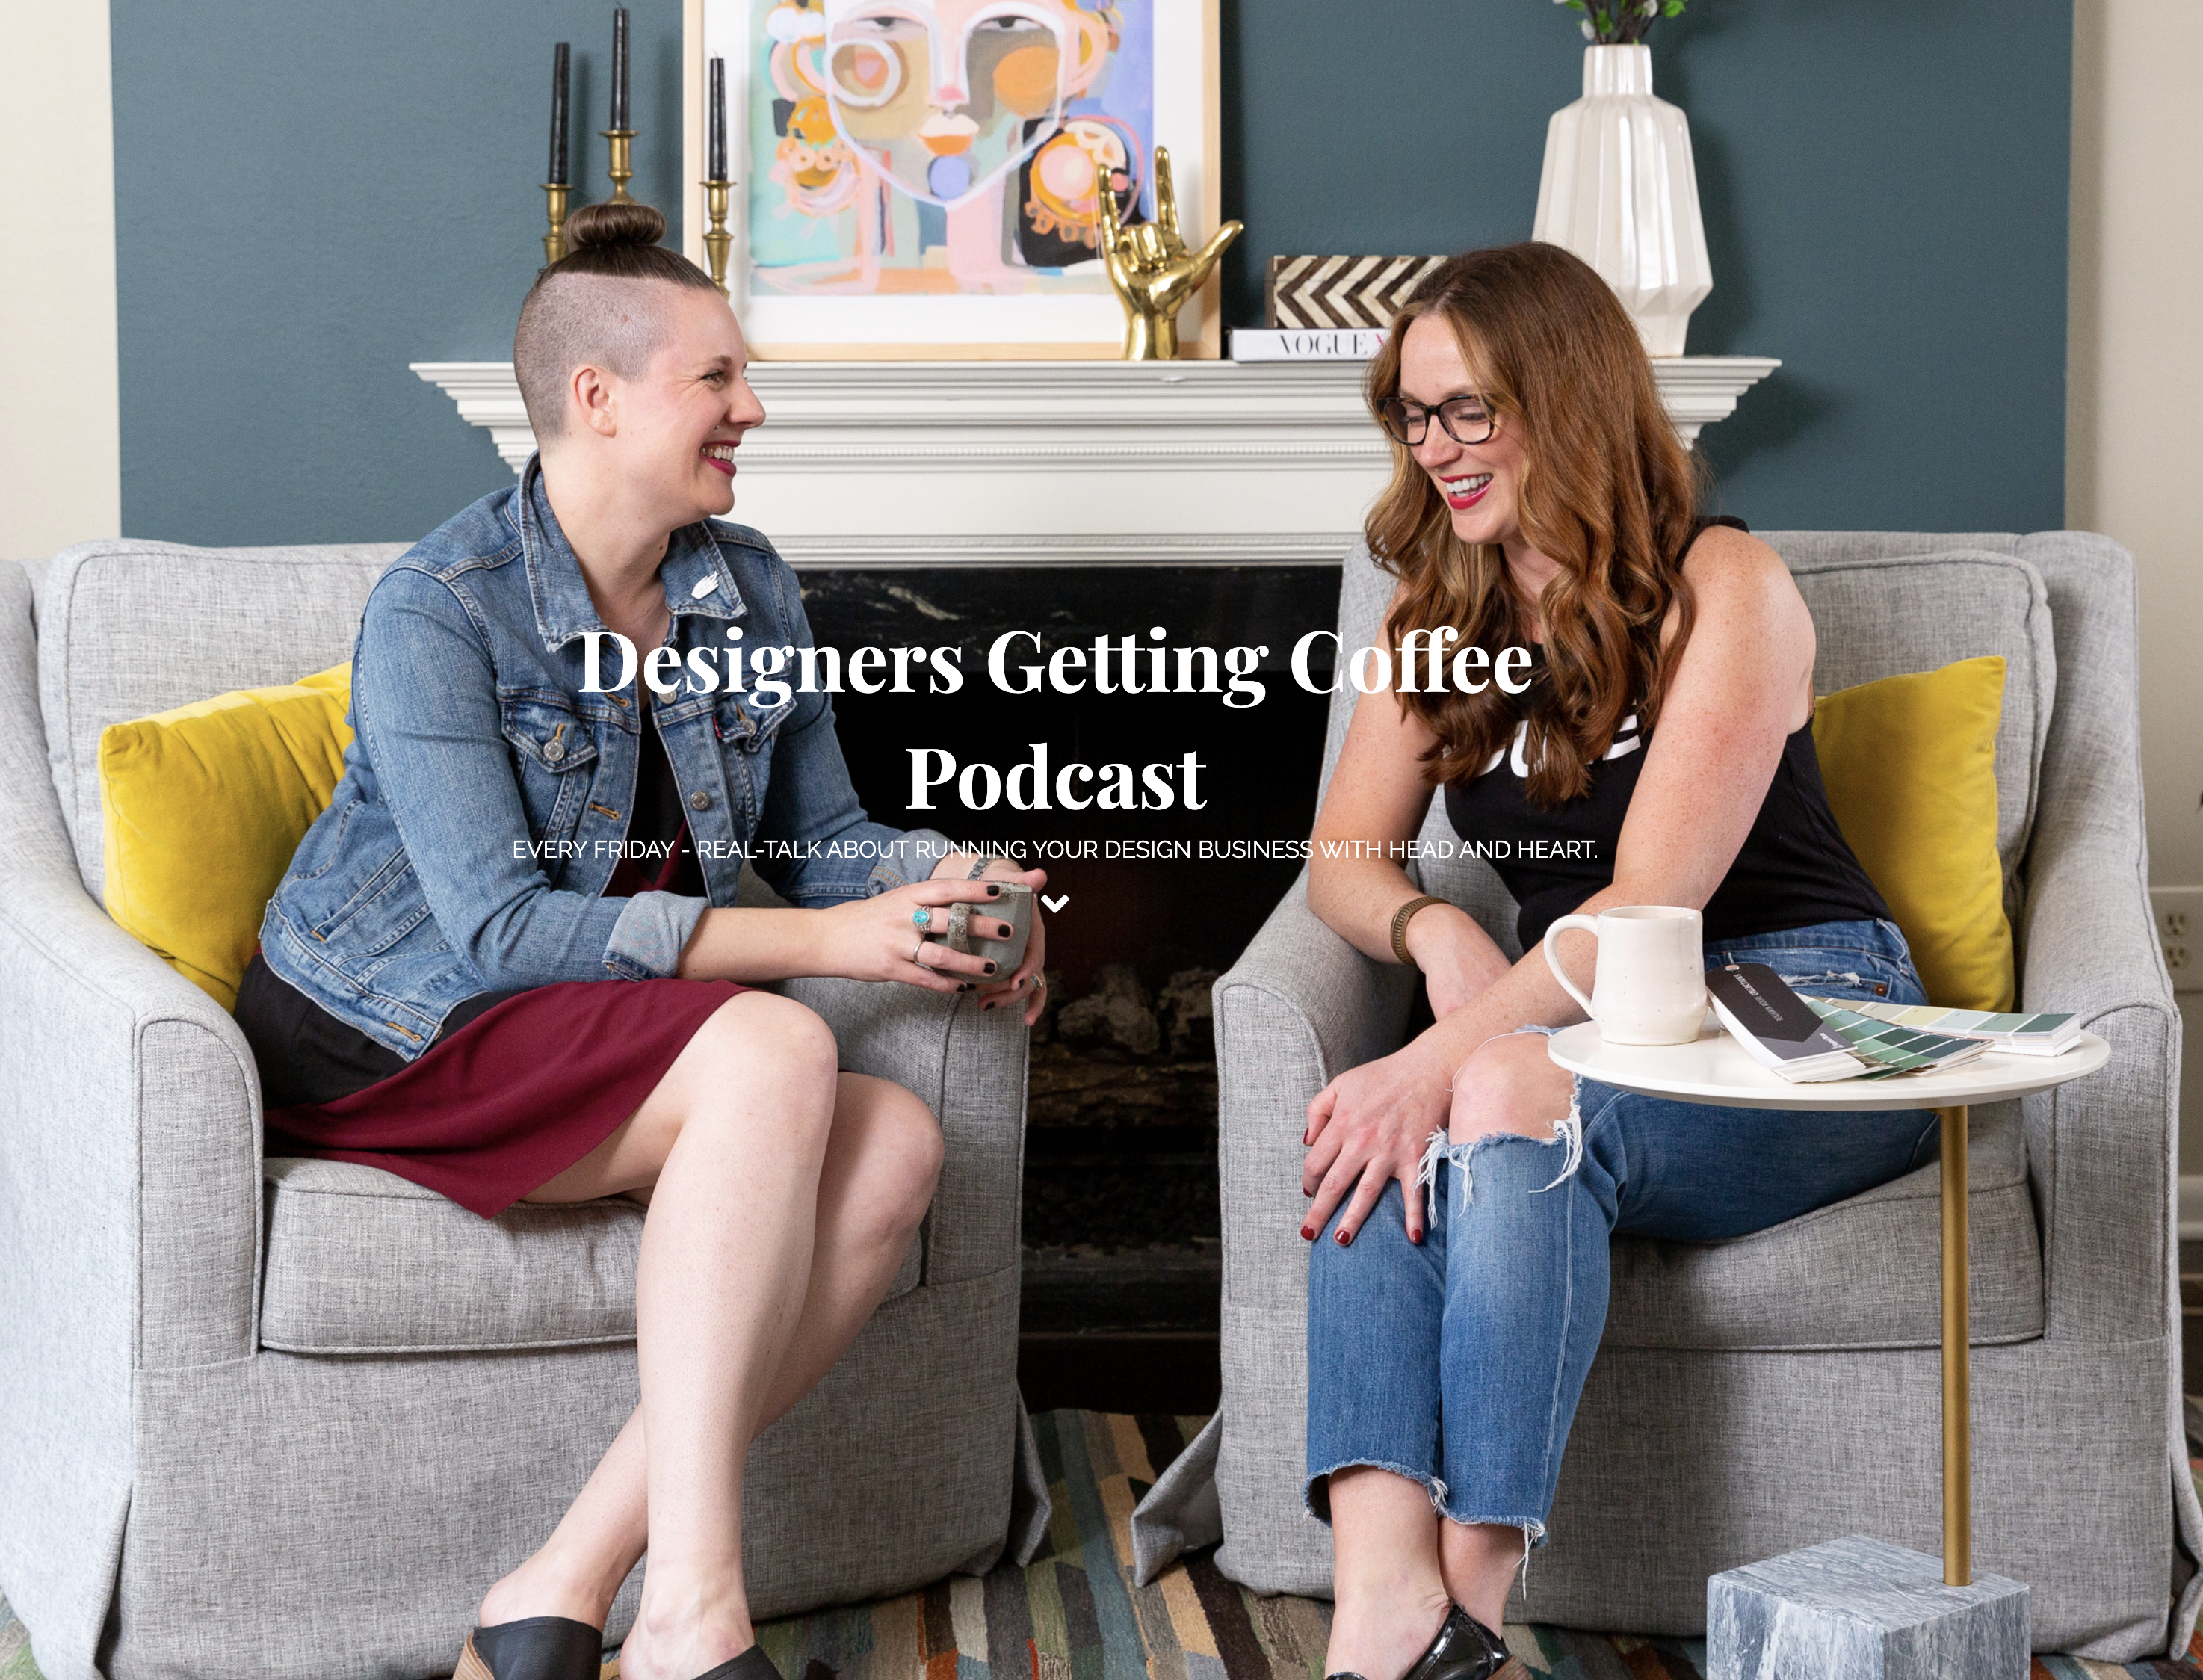 Business podcast for interior designers - Designers Getting Coffee with Lesley Myrick and Kate Bendewald